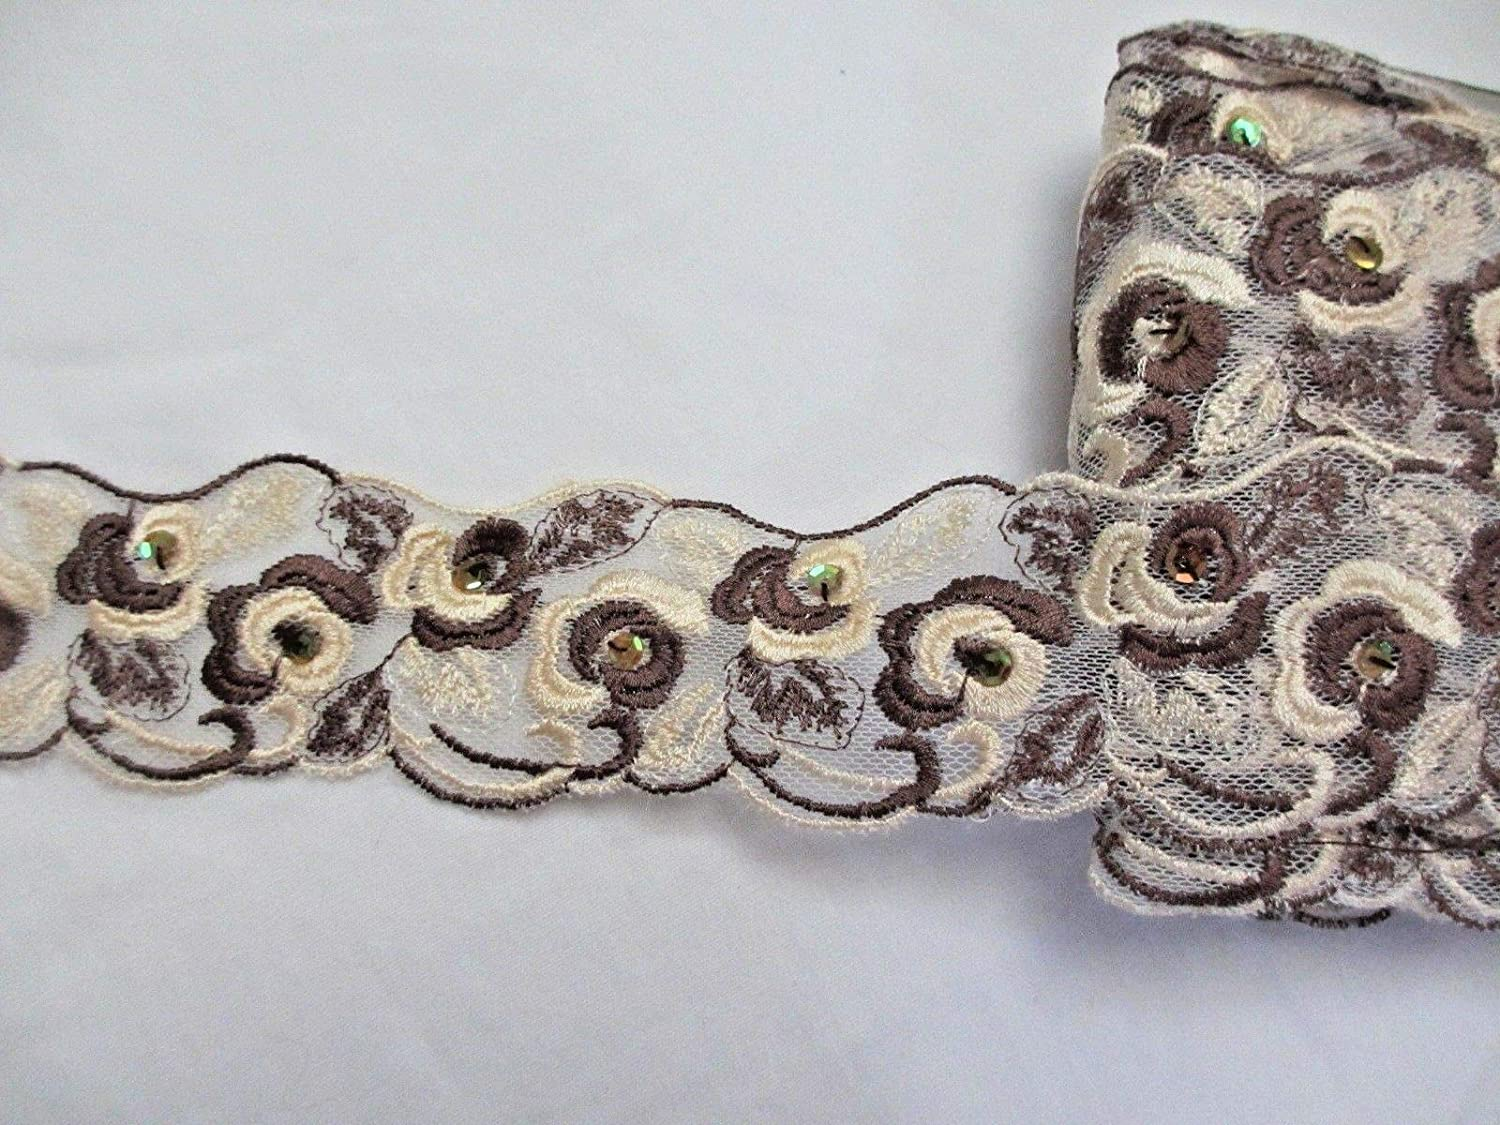 1 Yard Embroidery Applique Fabric Delicate DIY Art Craft Supply for Scrapbooking Gift Wrapping 2 3//8 Wide Coffee Bean Brown and Cream Embroidered Ribbon Lace Trim